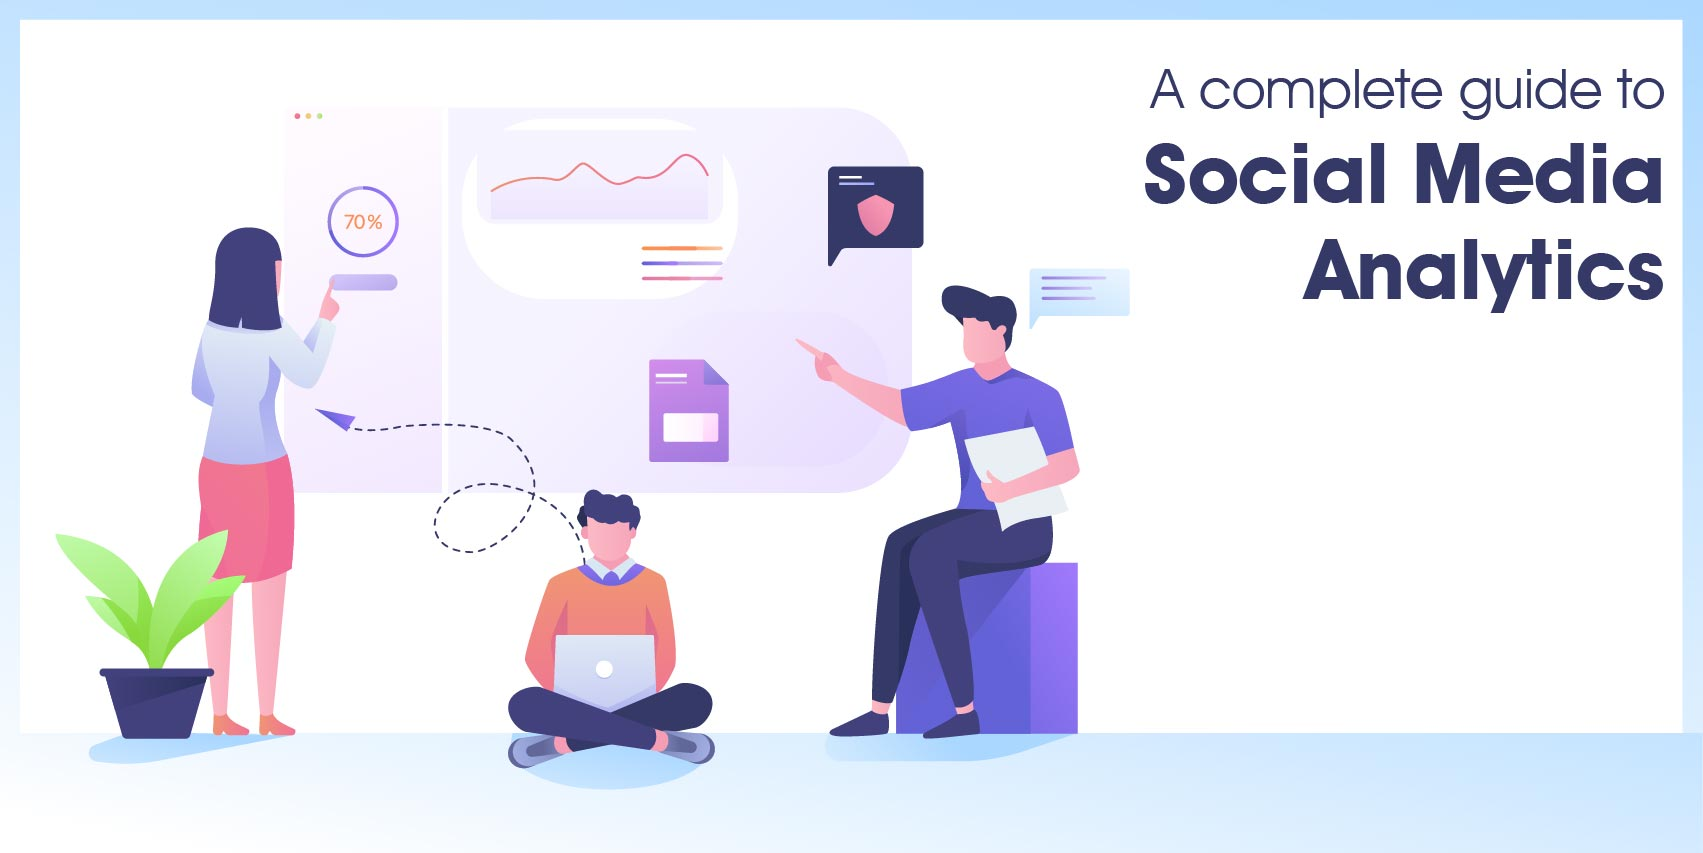 A complete guide to Social Media Analytics